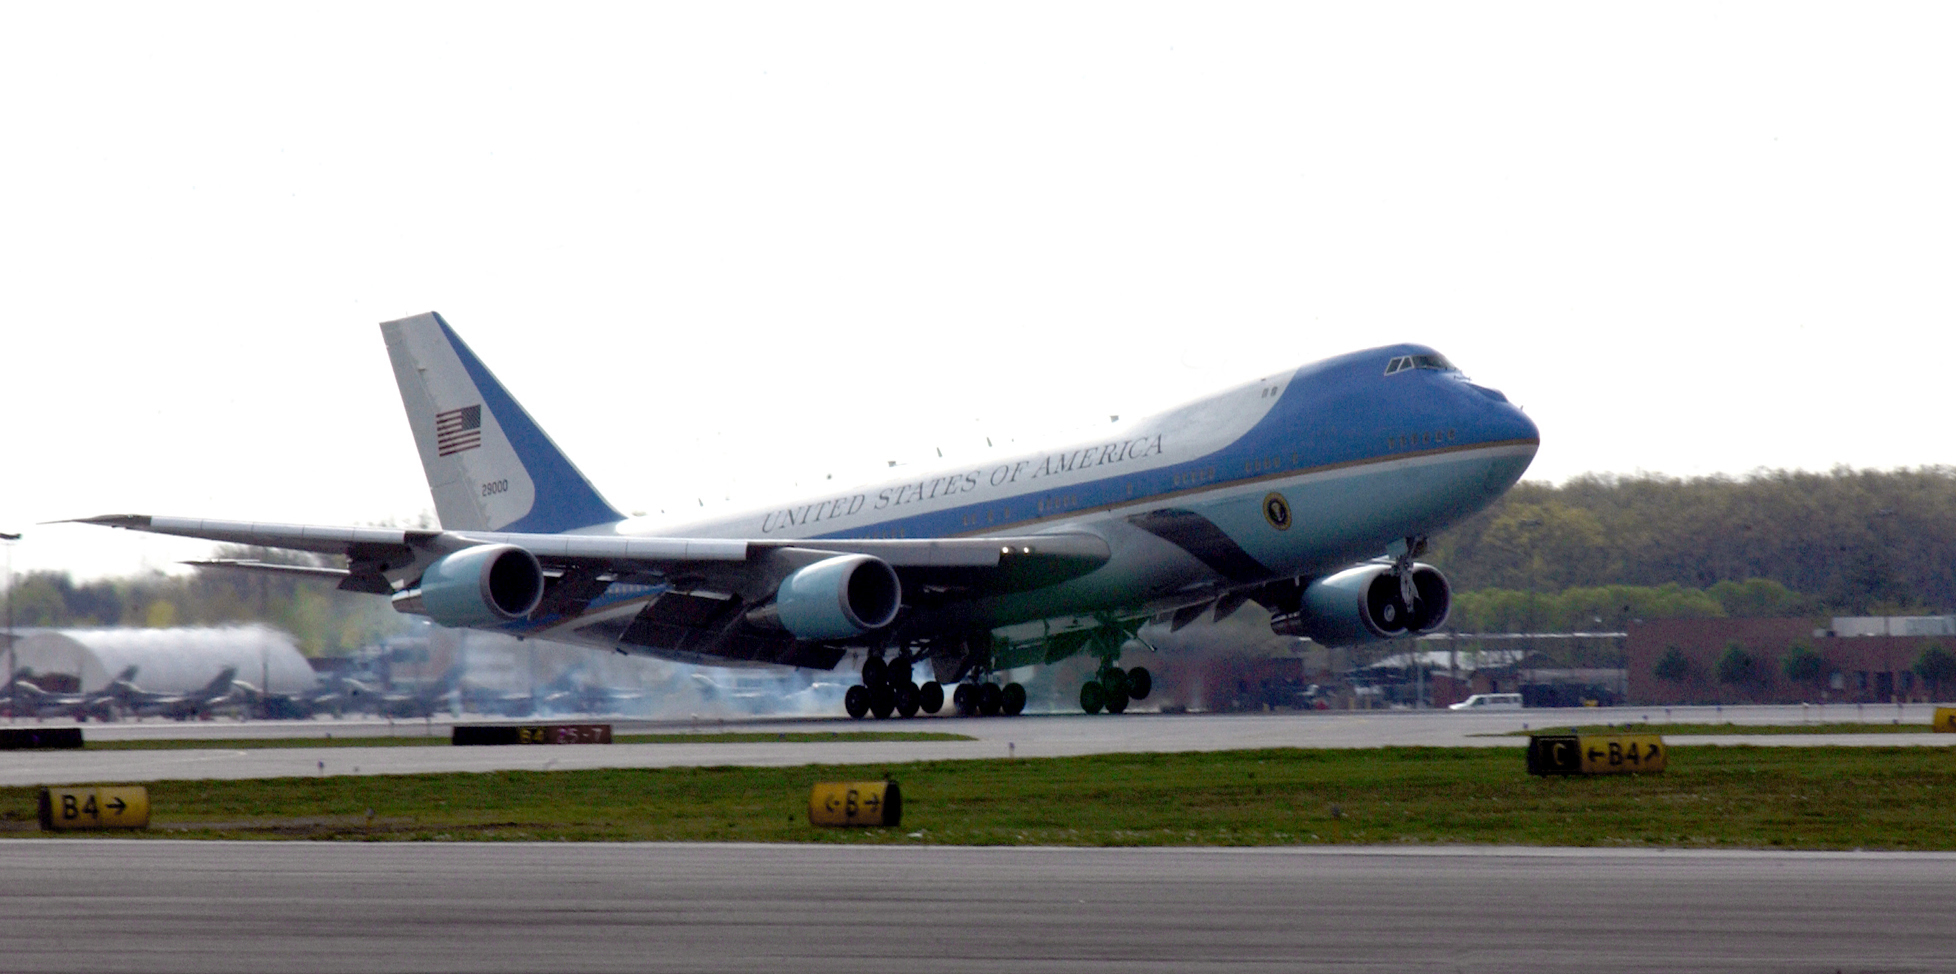 VC-25 - Air Force One > U.S. Air Force > Fact Sheet Display